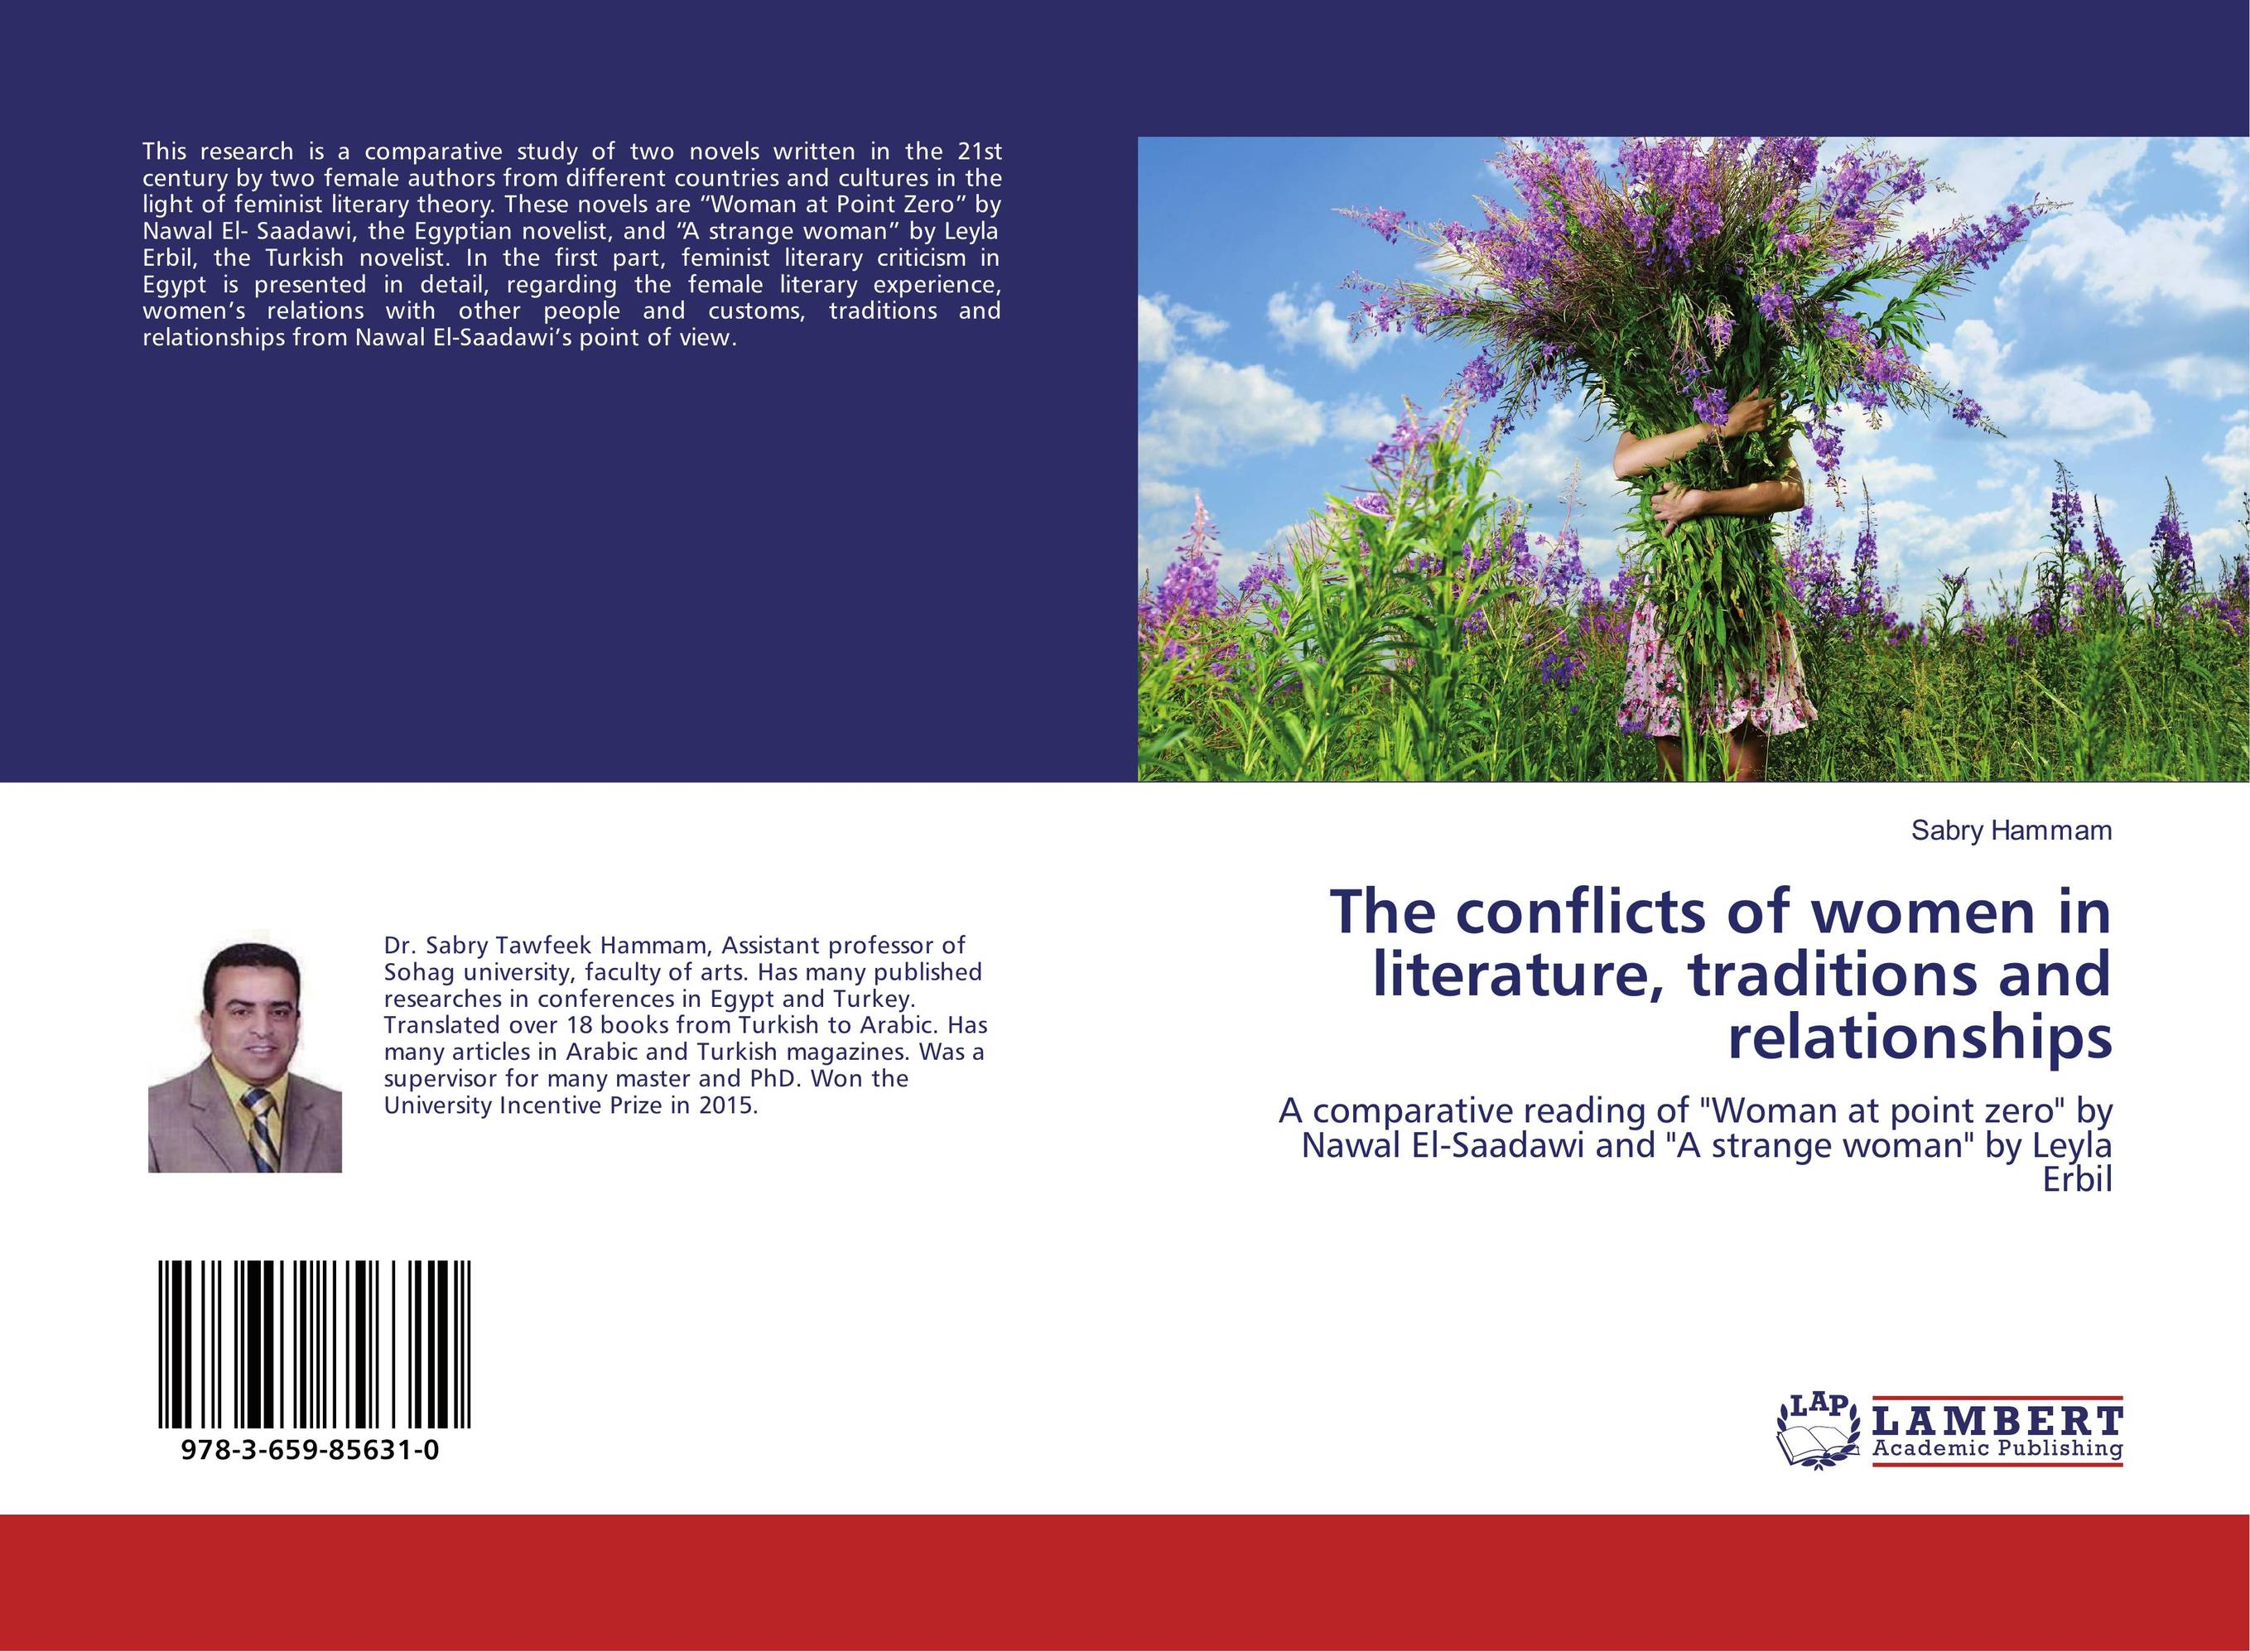 The conflicts of women in literature, traditions and relationships